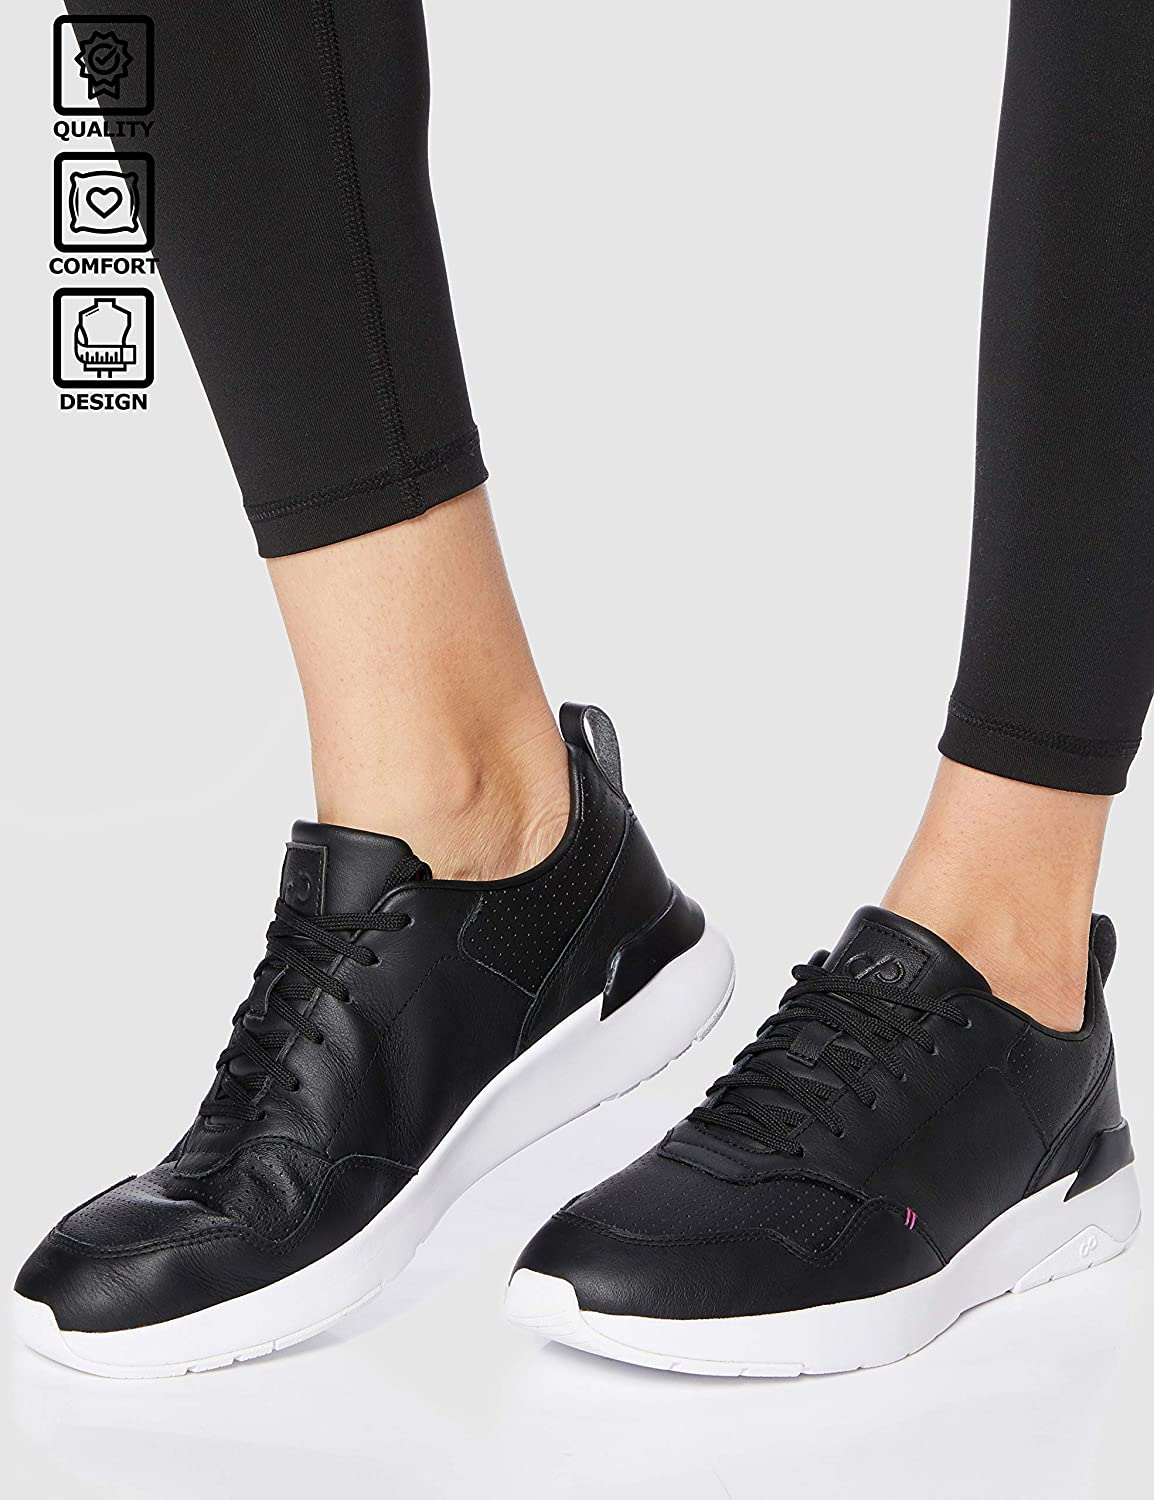 CARE OF Women's Workout Shoe